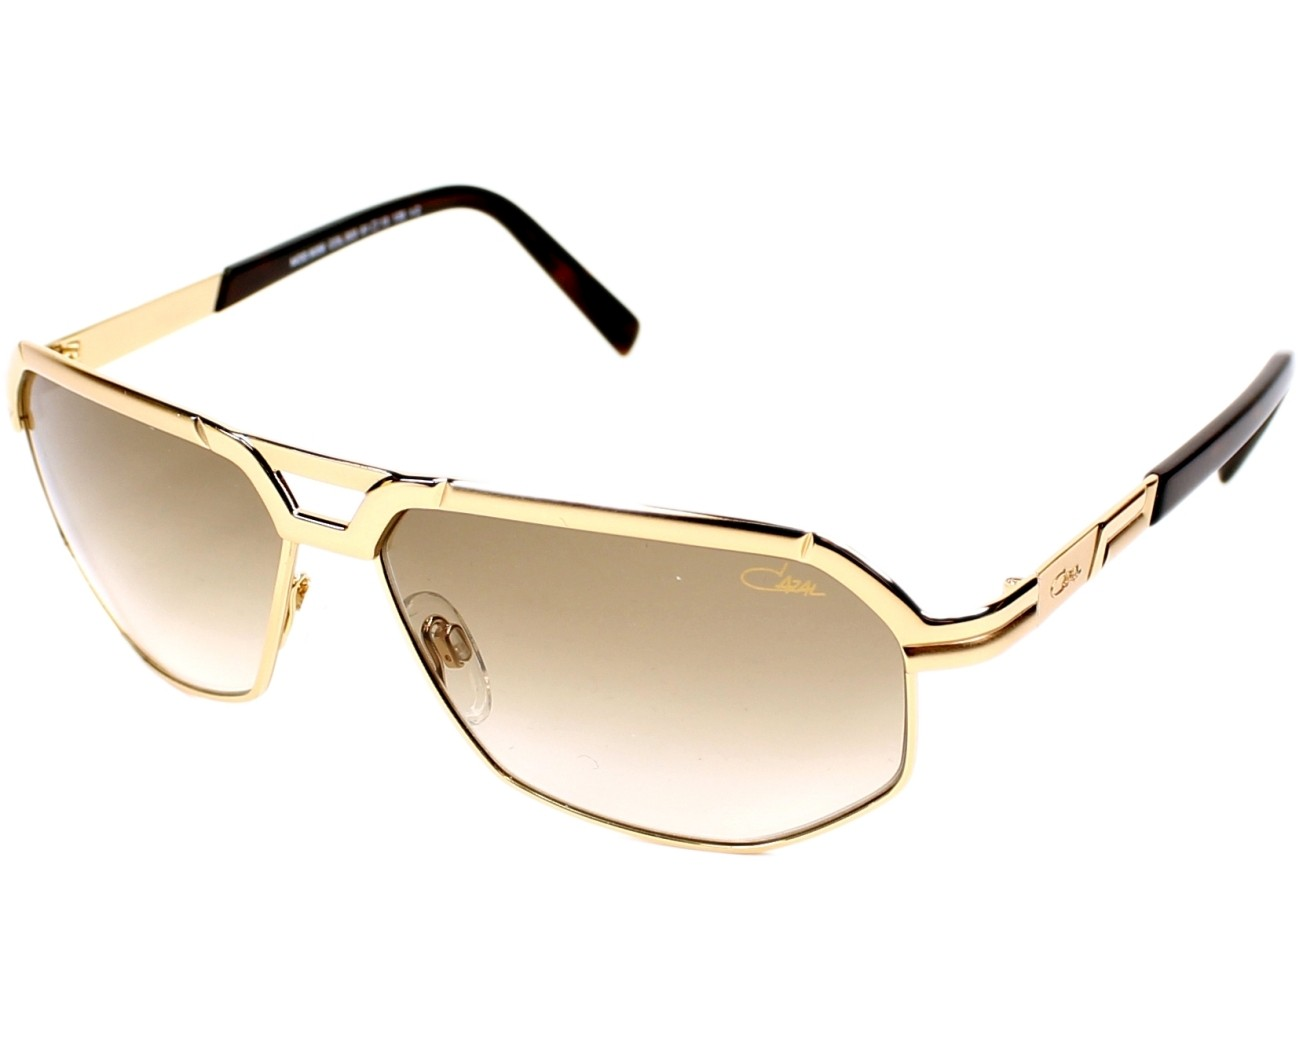 Cazal Sunglasses Gold With Brown Lenses 9056 003 Visionet Us